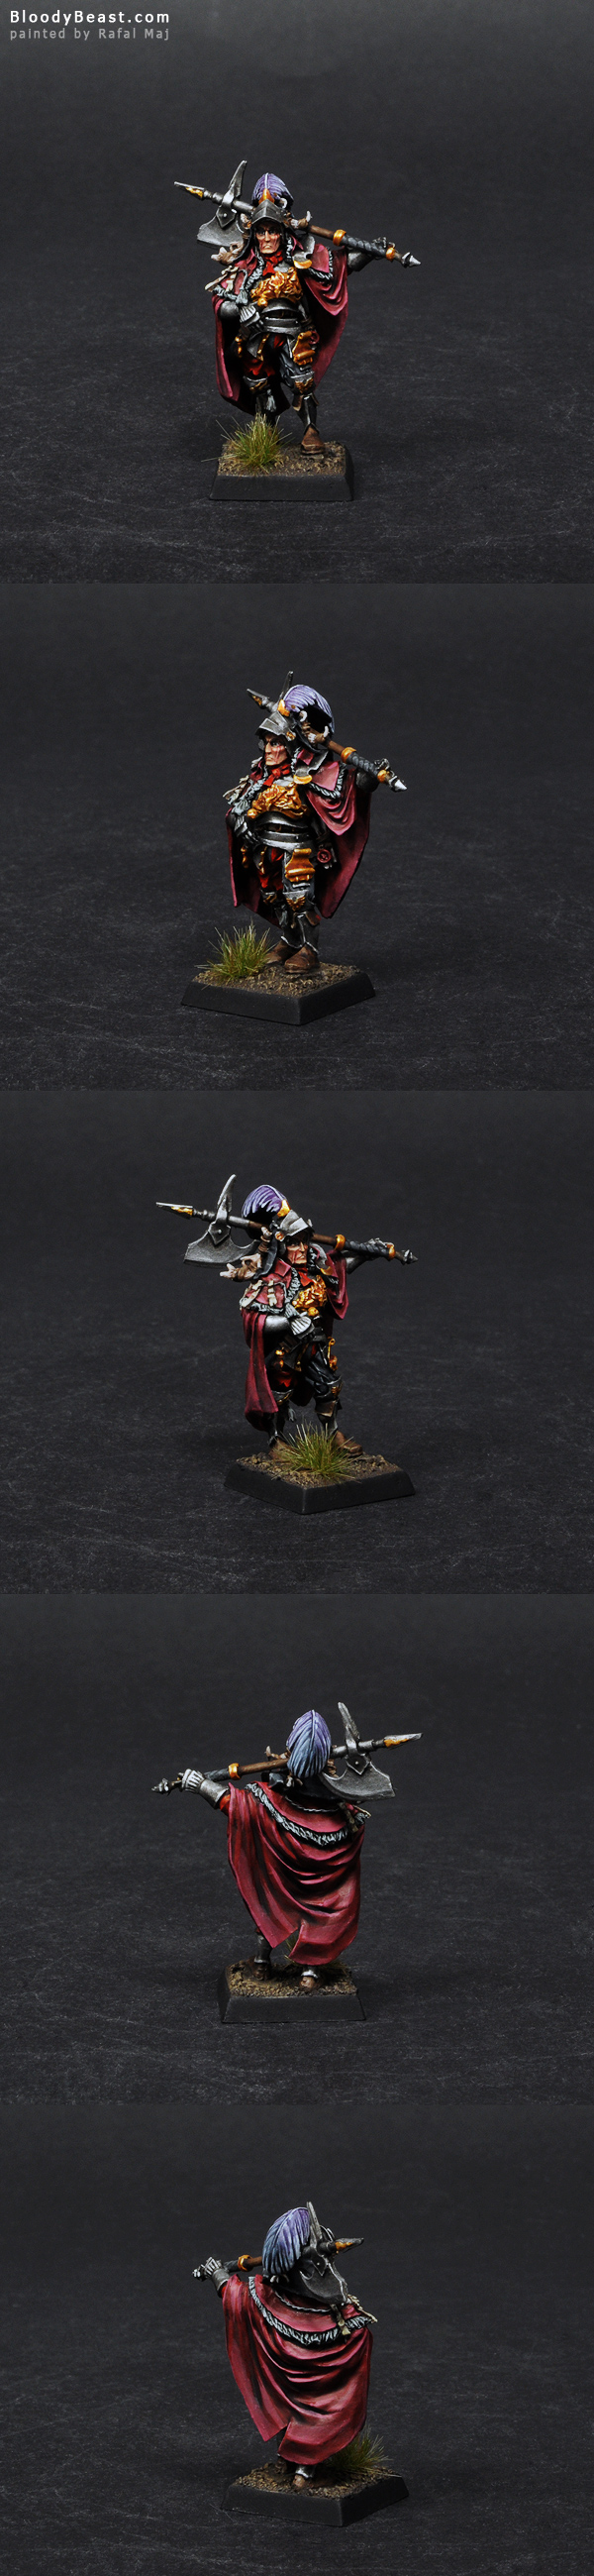 The Empire Command Captain painted by Rafal Maj (BloodyBeast.com)